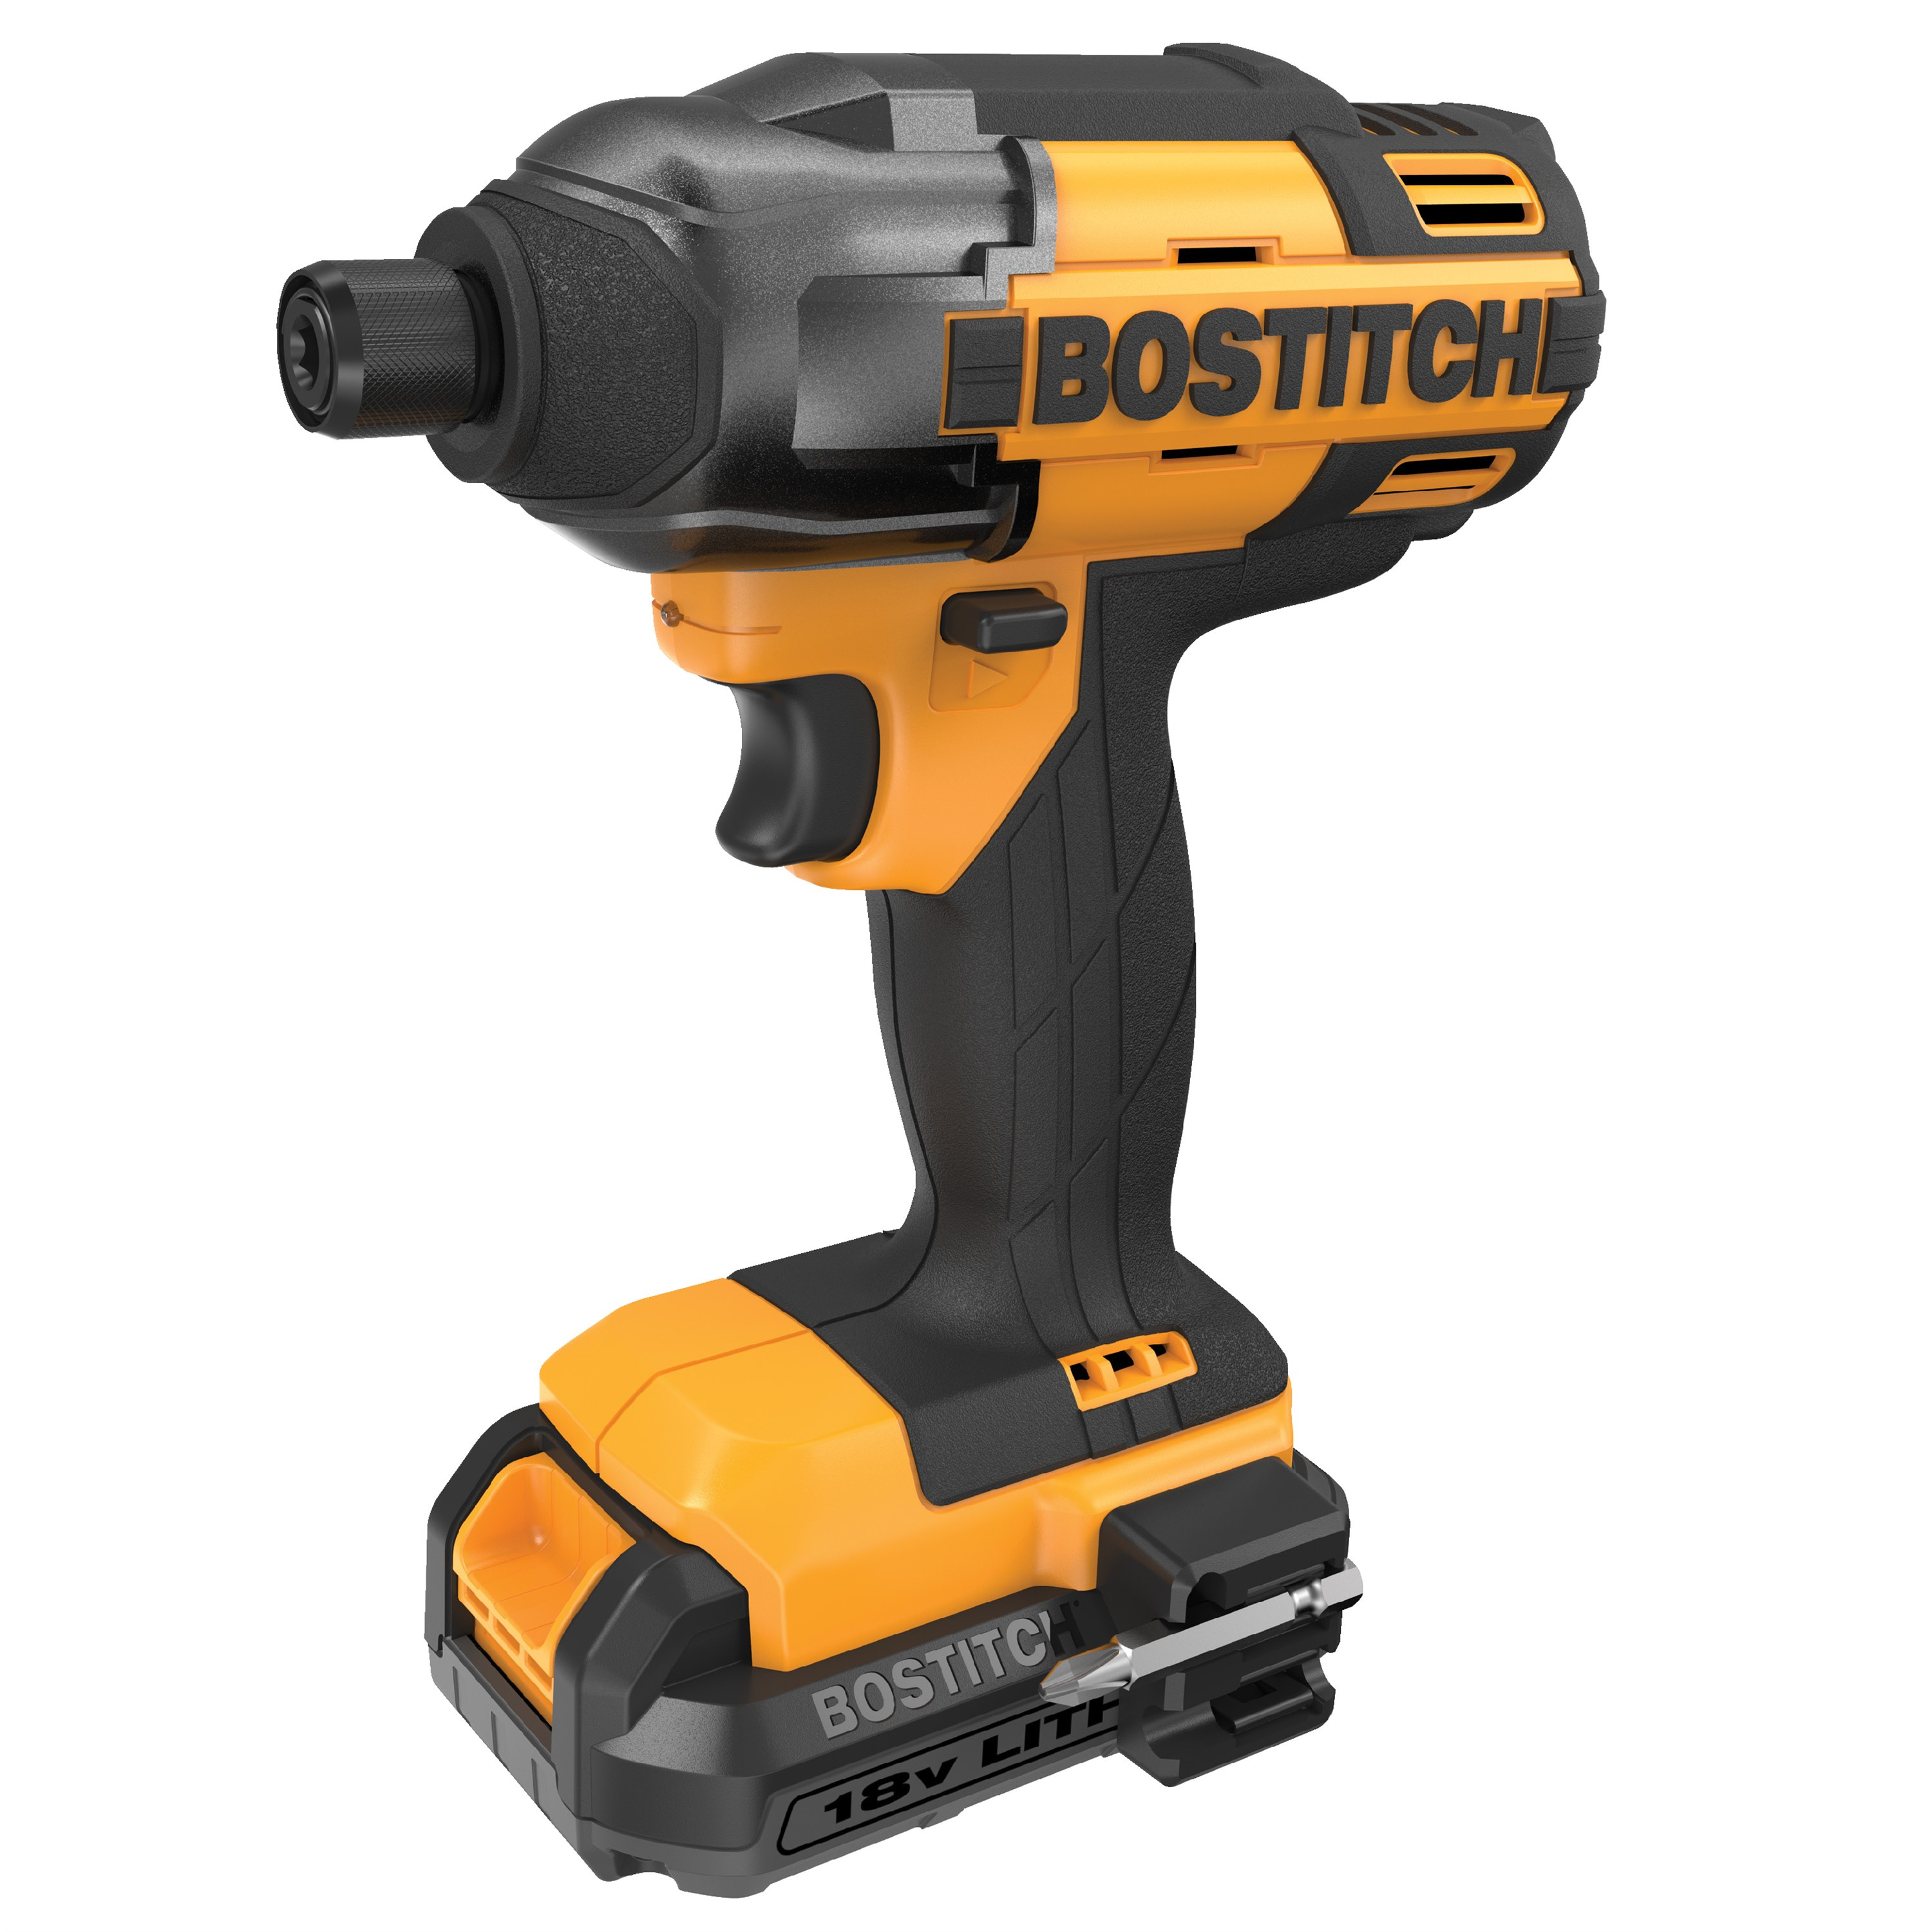 BOSTITCH 18-Volt Lithium-Ion Impact Driver, BTC441Lb